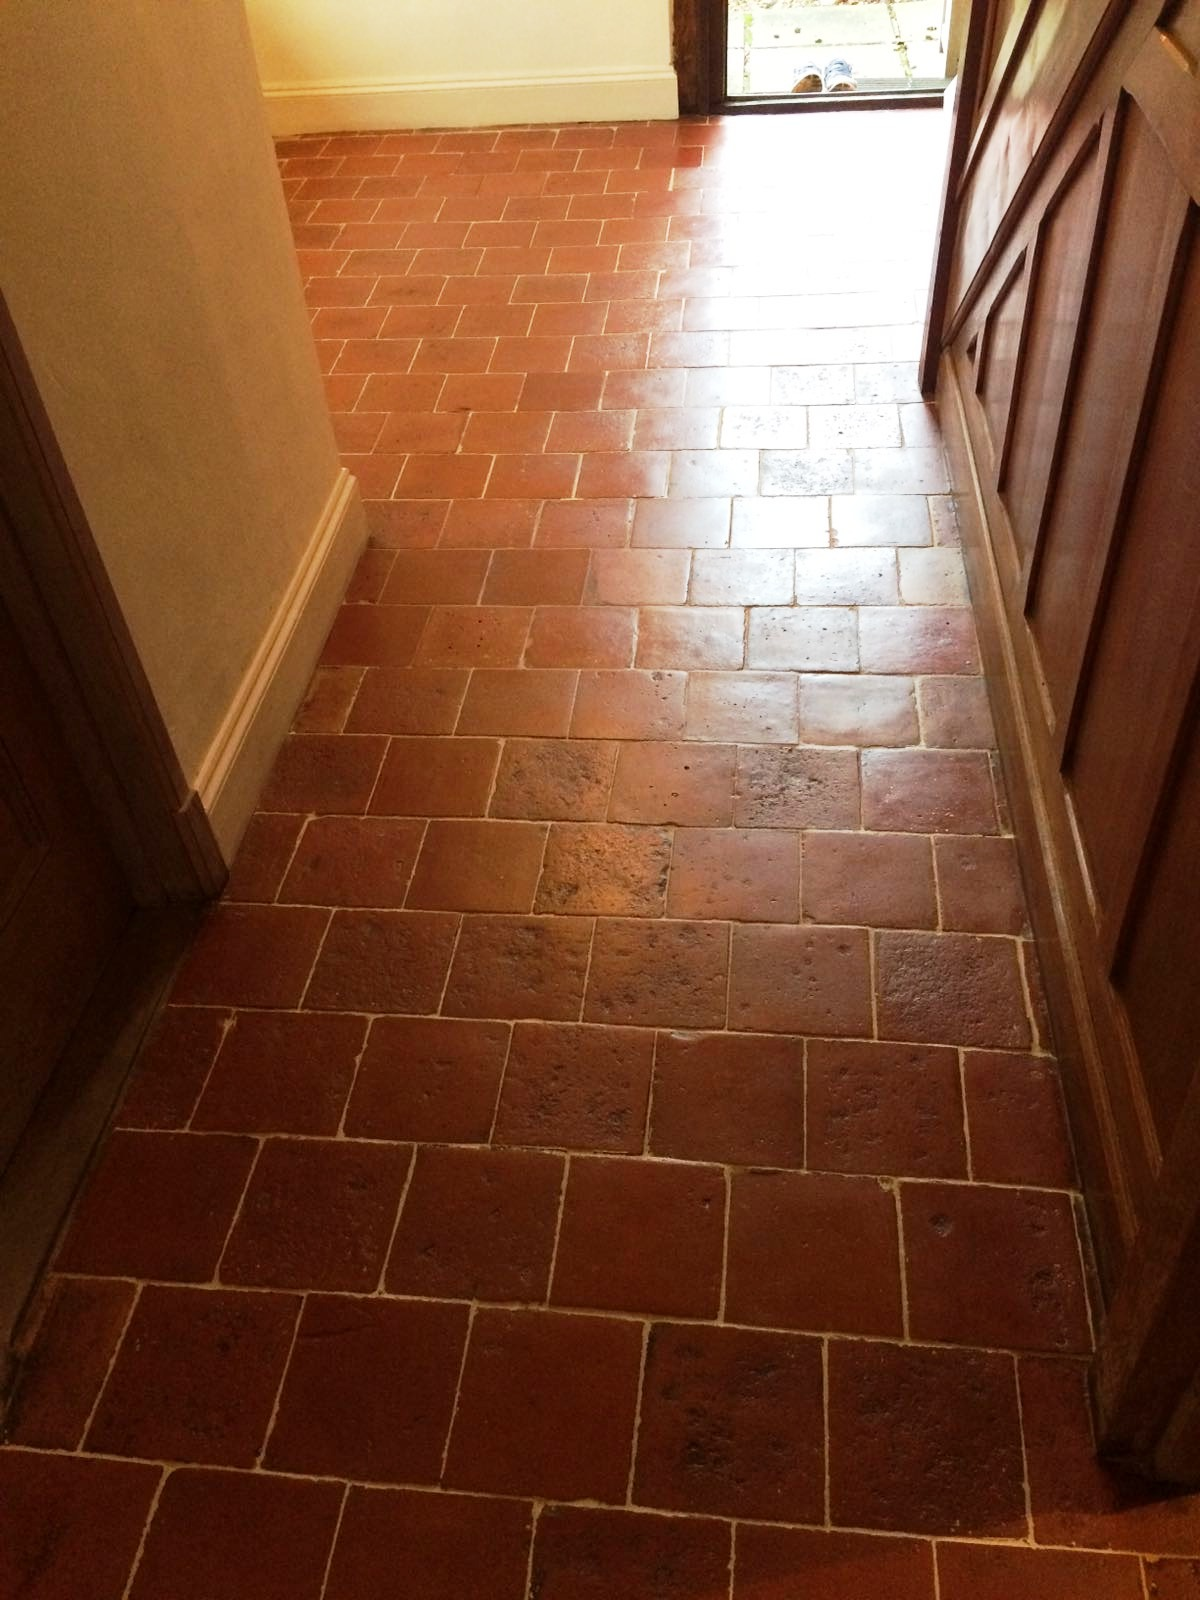 Tile cleaning quarry tiled floors cleaning and sealing old quarry tiles after cleaning hemel hempstead farmhouse dailygadgetfo Choice Image